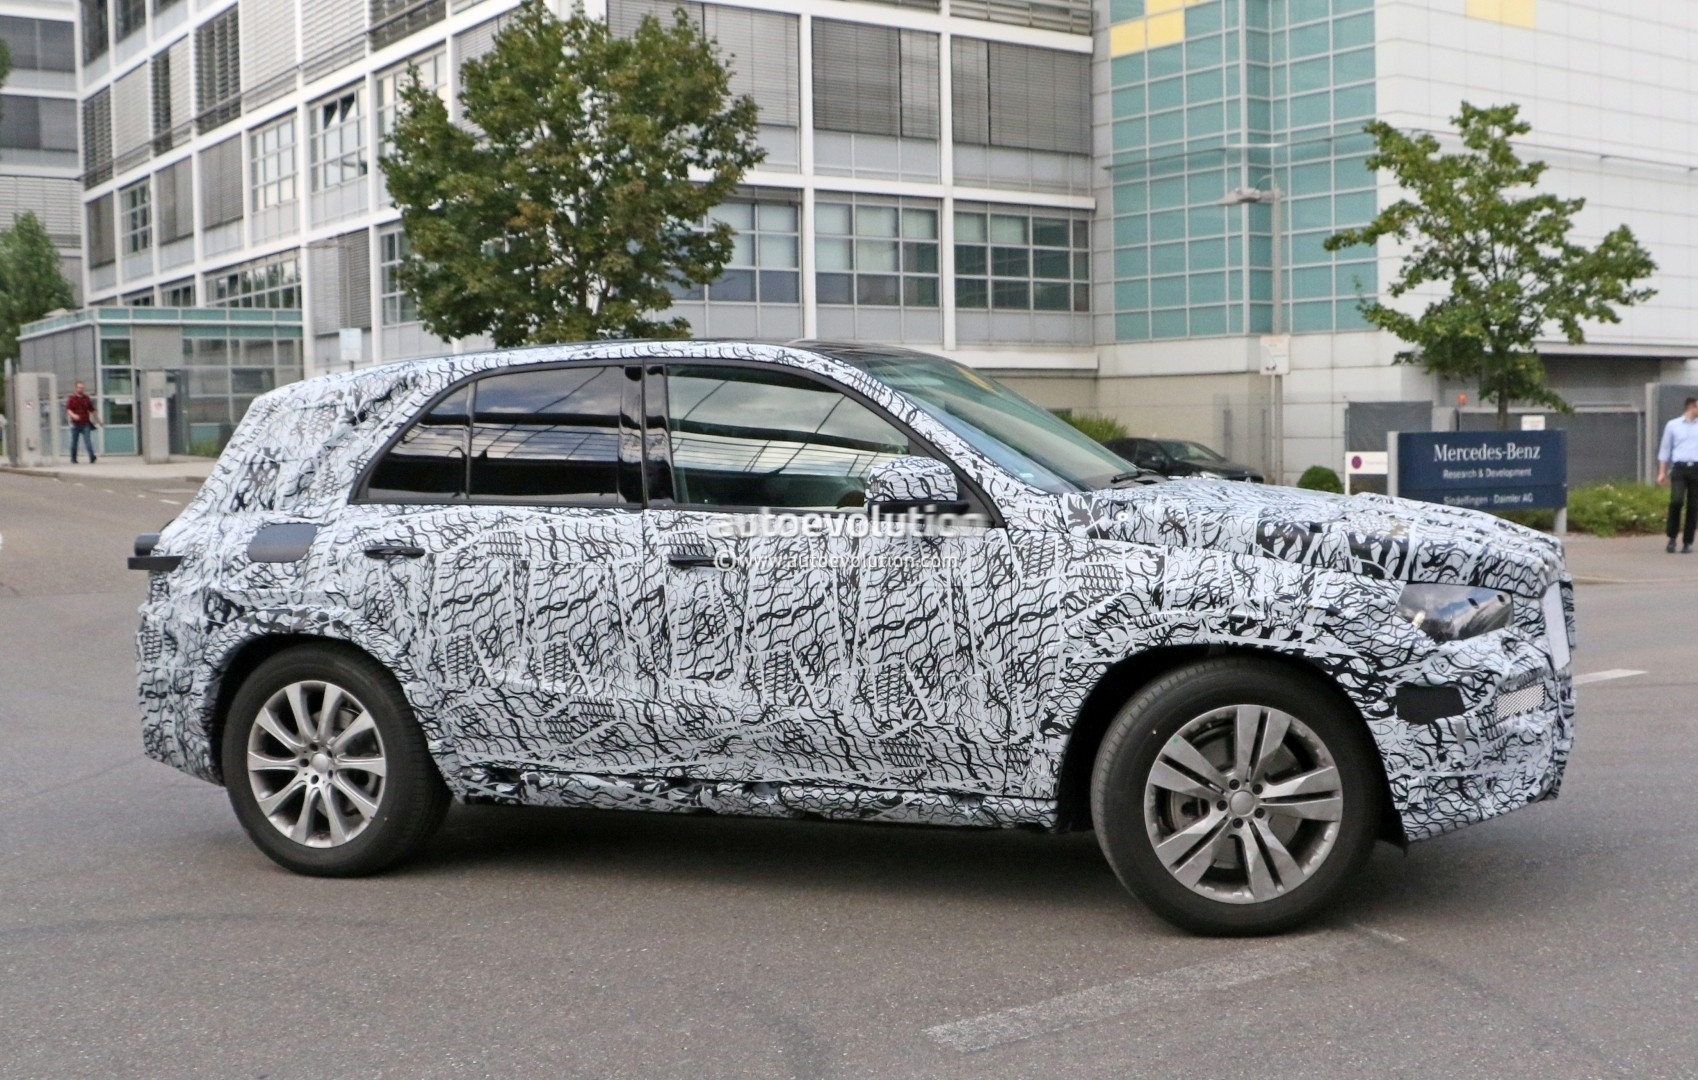 2019 Mercedes Benz Gle Spied Up Close Will Have A Much